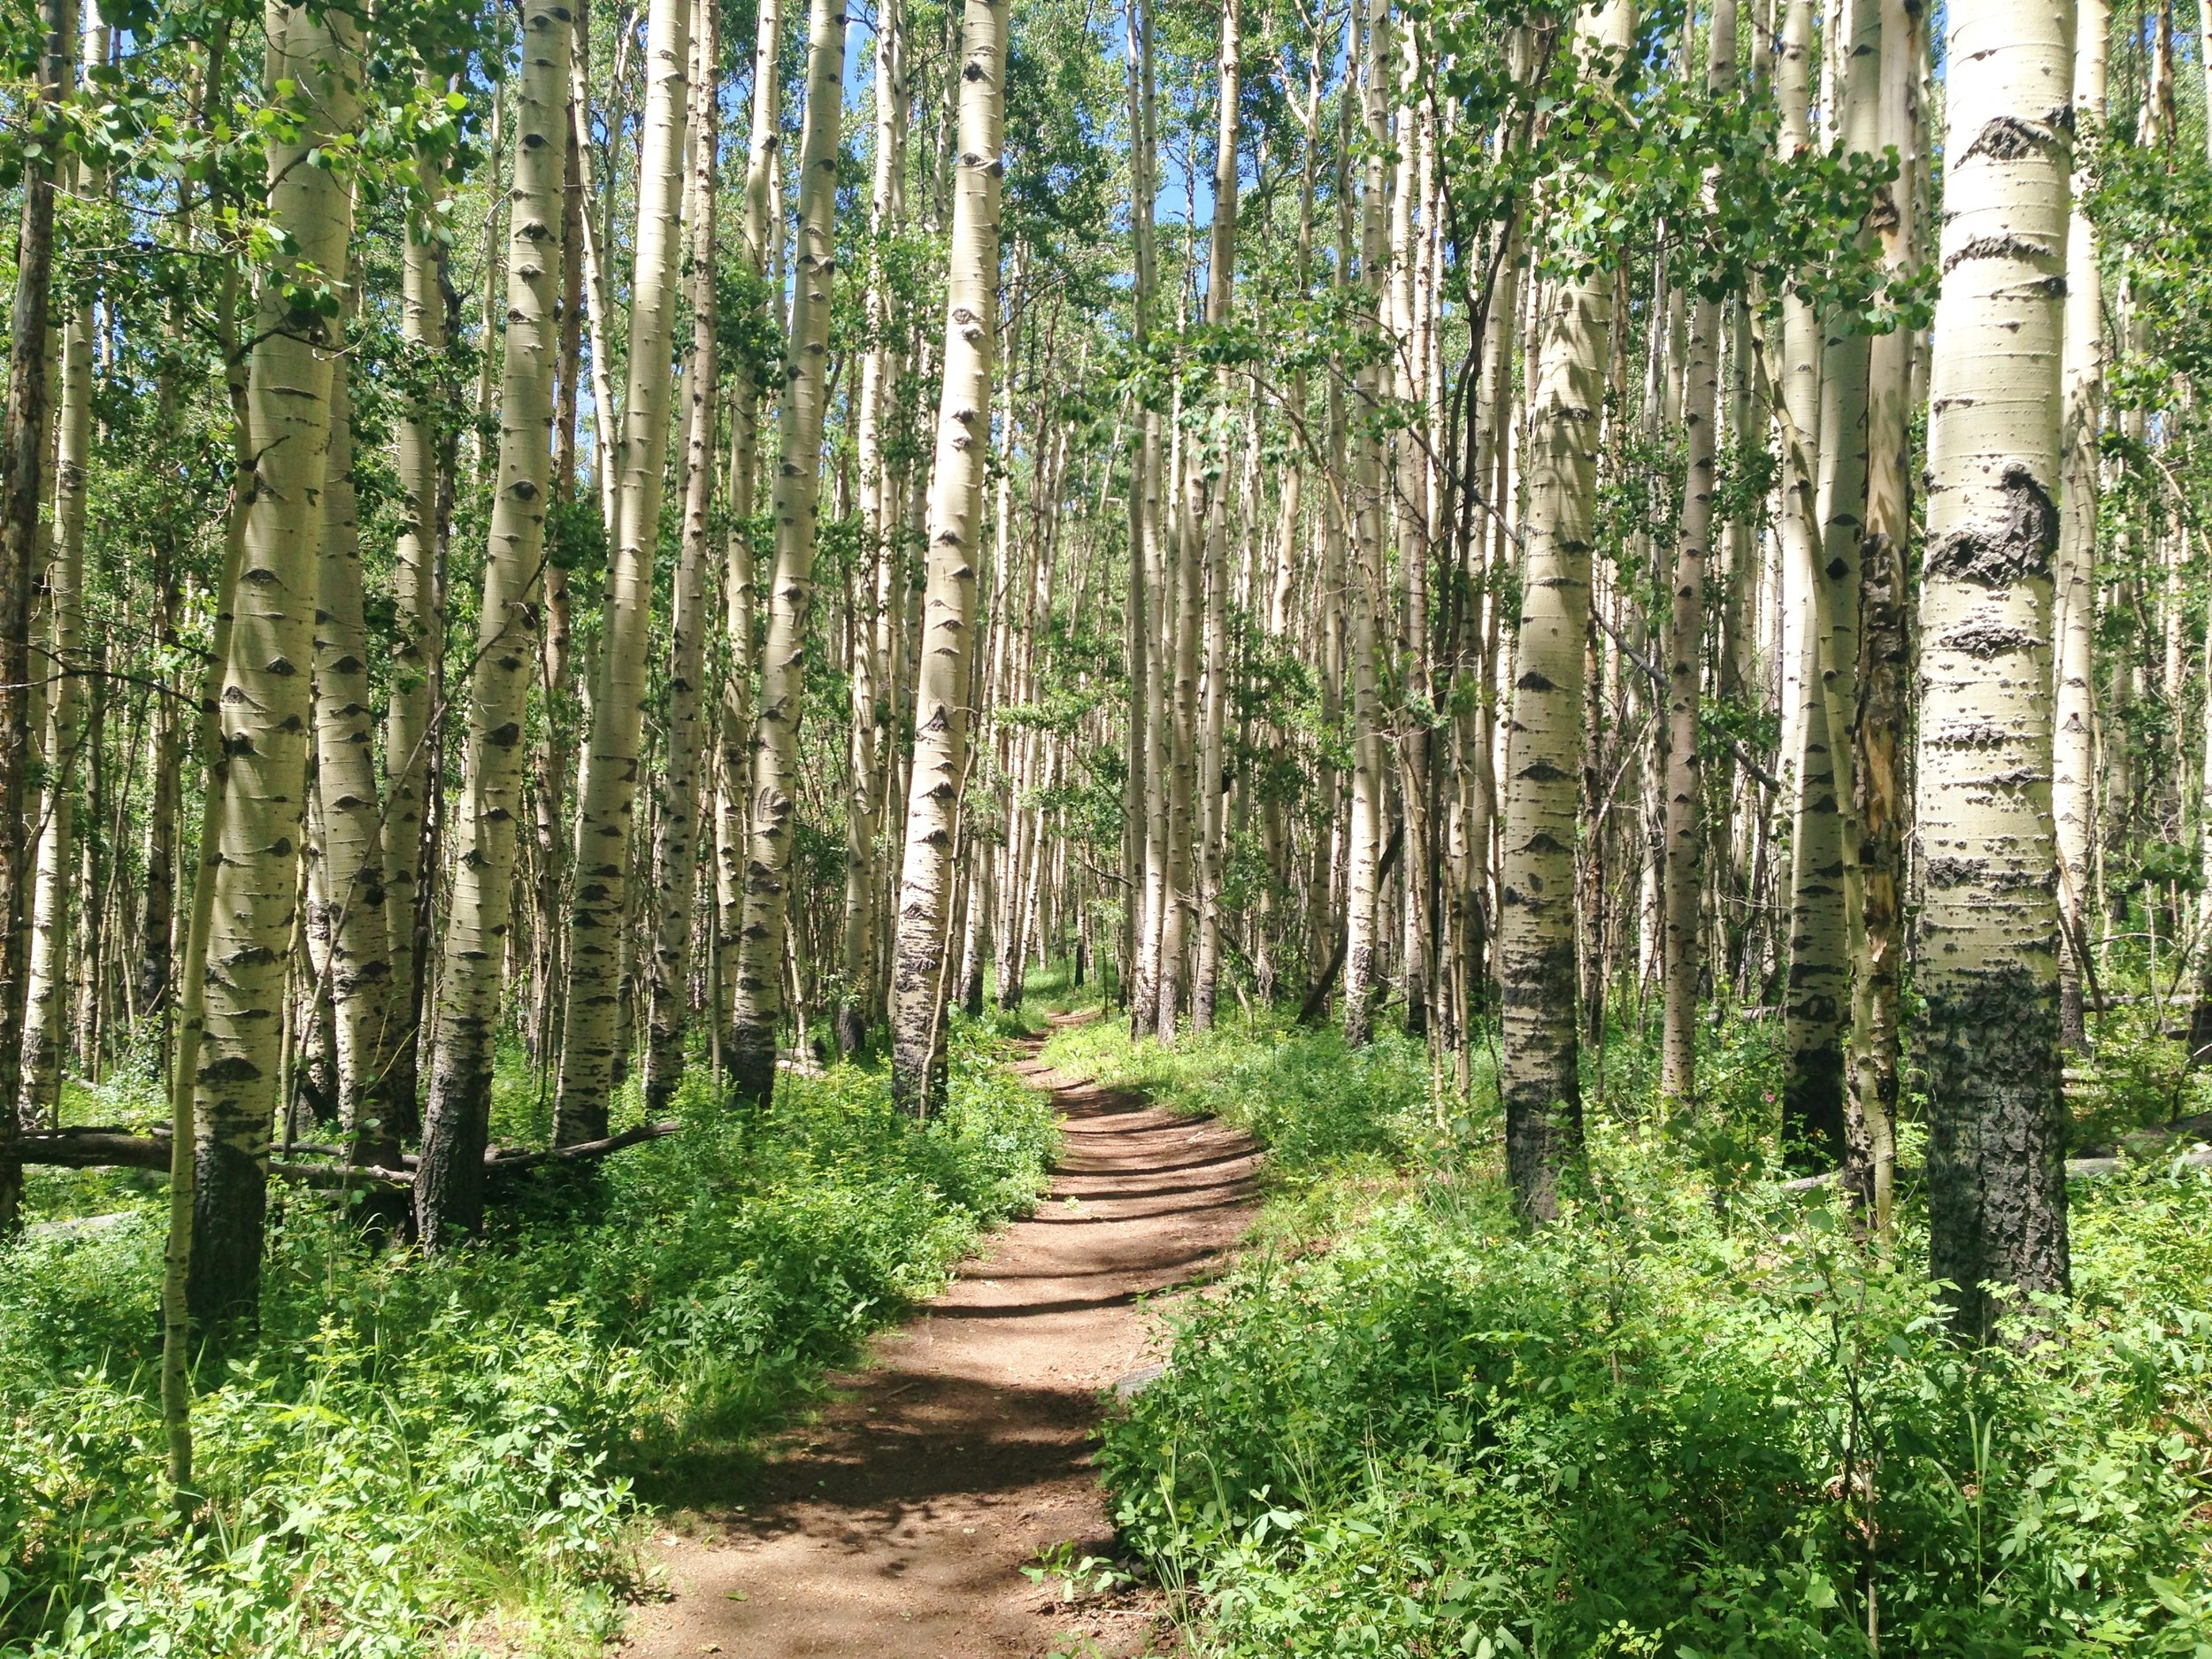 Day 6:  I walked through tunnels of aspen on the east side of Kenosha Pass, reached the parking lot and took a huge digger after tripping over my own feet. I called it a day and made camp to lick my wounds and comfort my bruised ego. Daily mileage: 14.6. Total miles: 71.7.